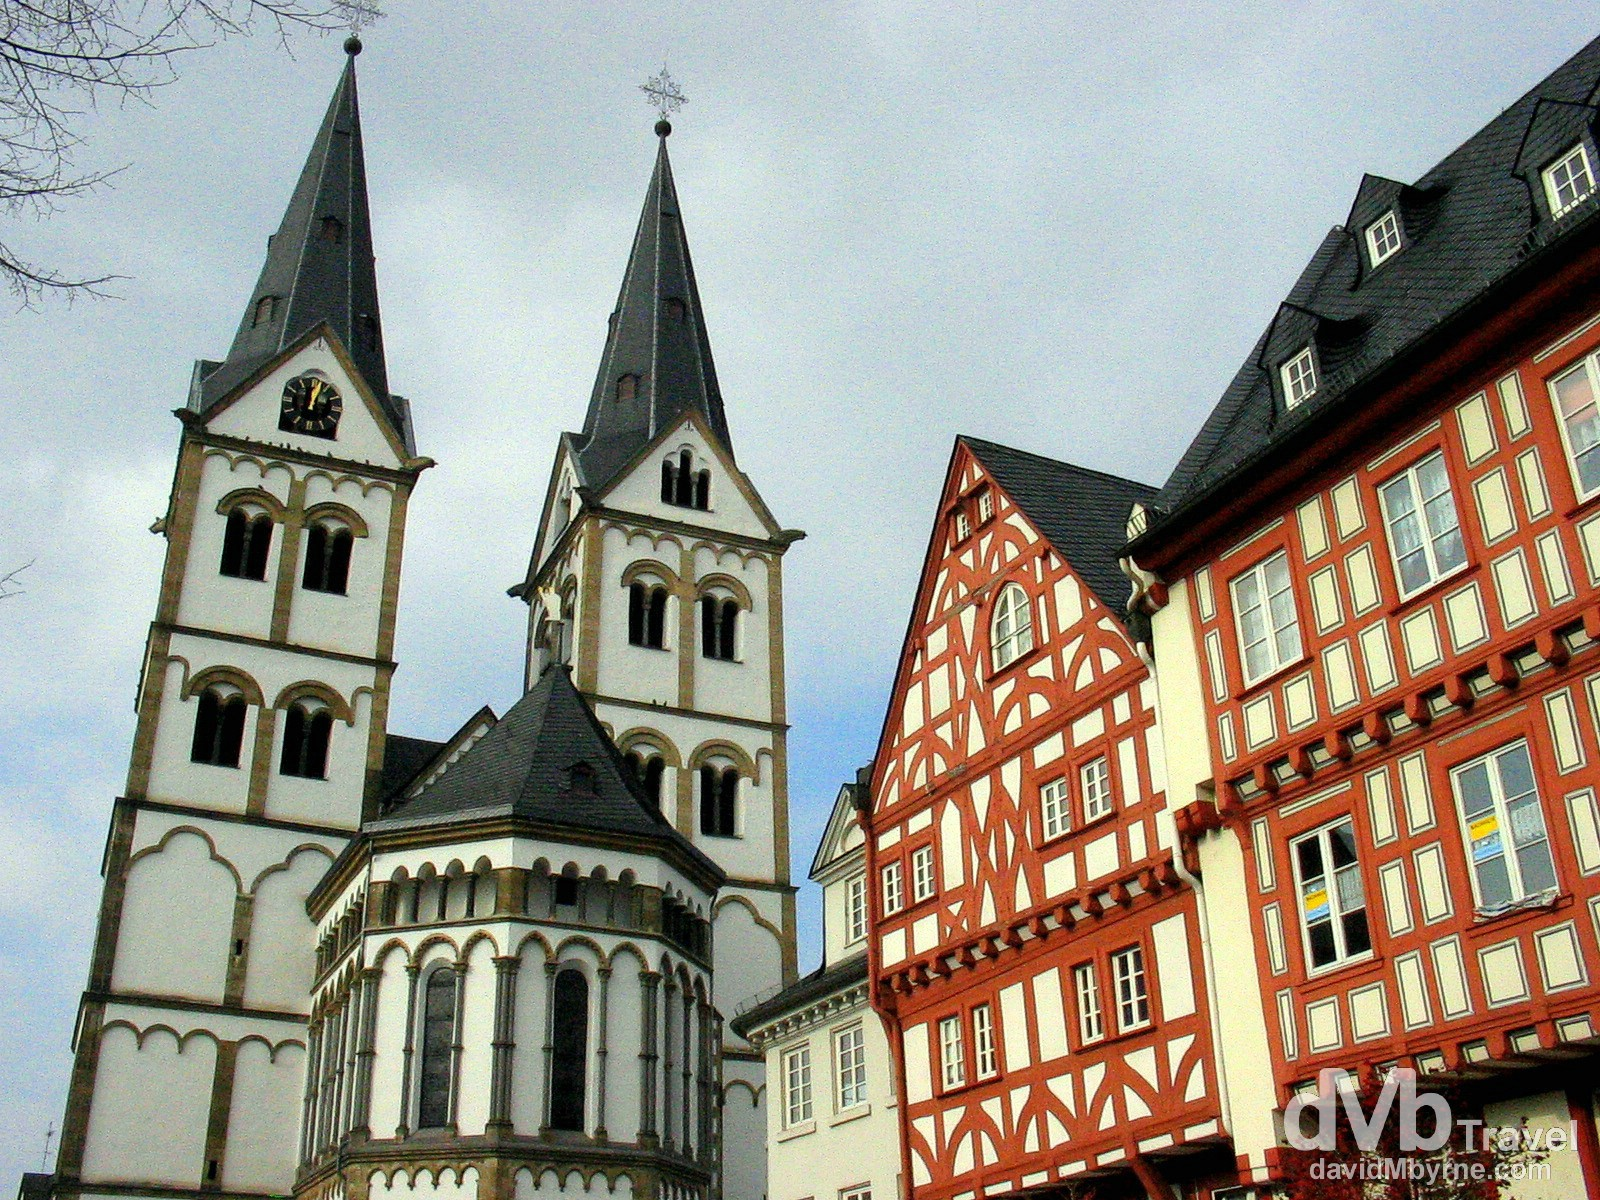 The twin towers of Saint Severus Church in Marktplatz, Boppard, Rhineland, in western Germany. February 18th 2005.